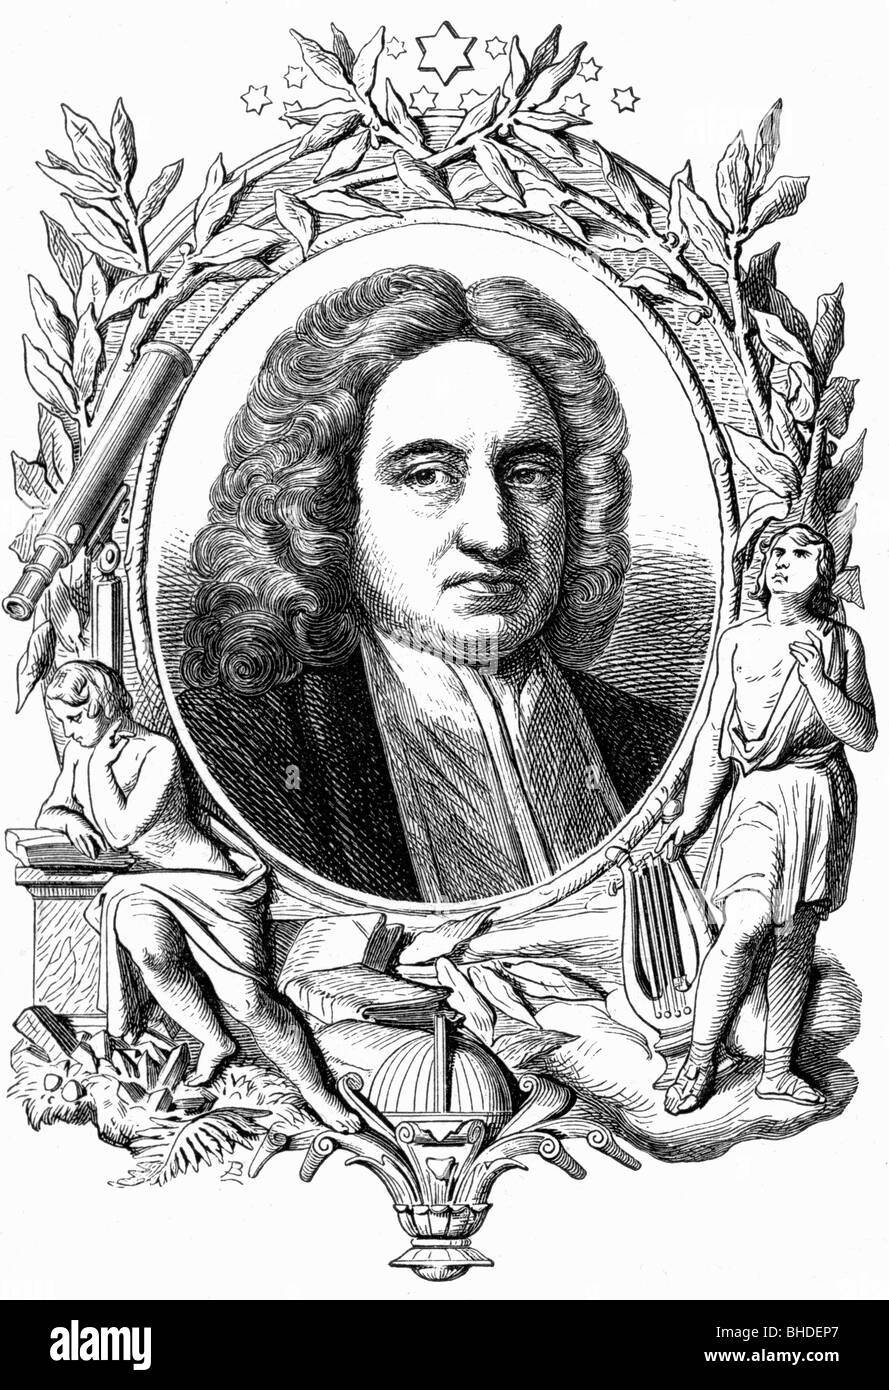 Halley, Edmund, 29.10.1656 - 14.1.1742, English astronomer, portrait, allegorical illustration, 19th century, Additional - Stock Image